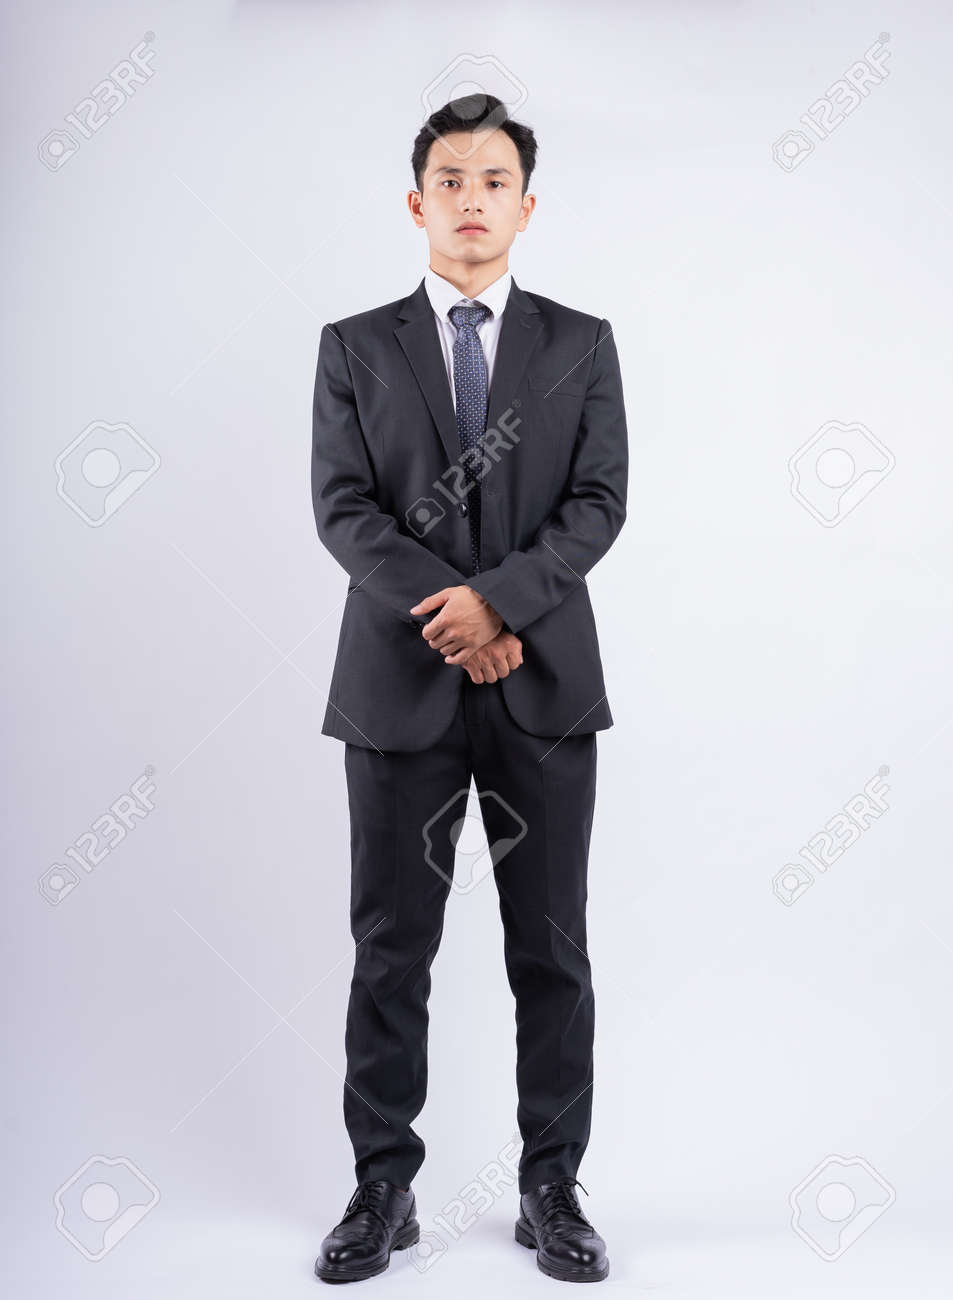 Young Asian businessman standing on white background - 167977955